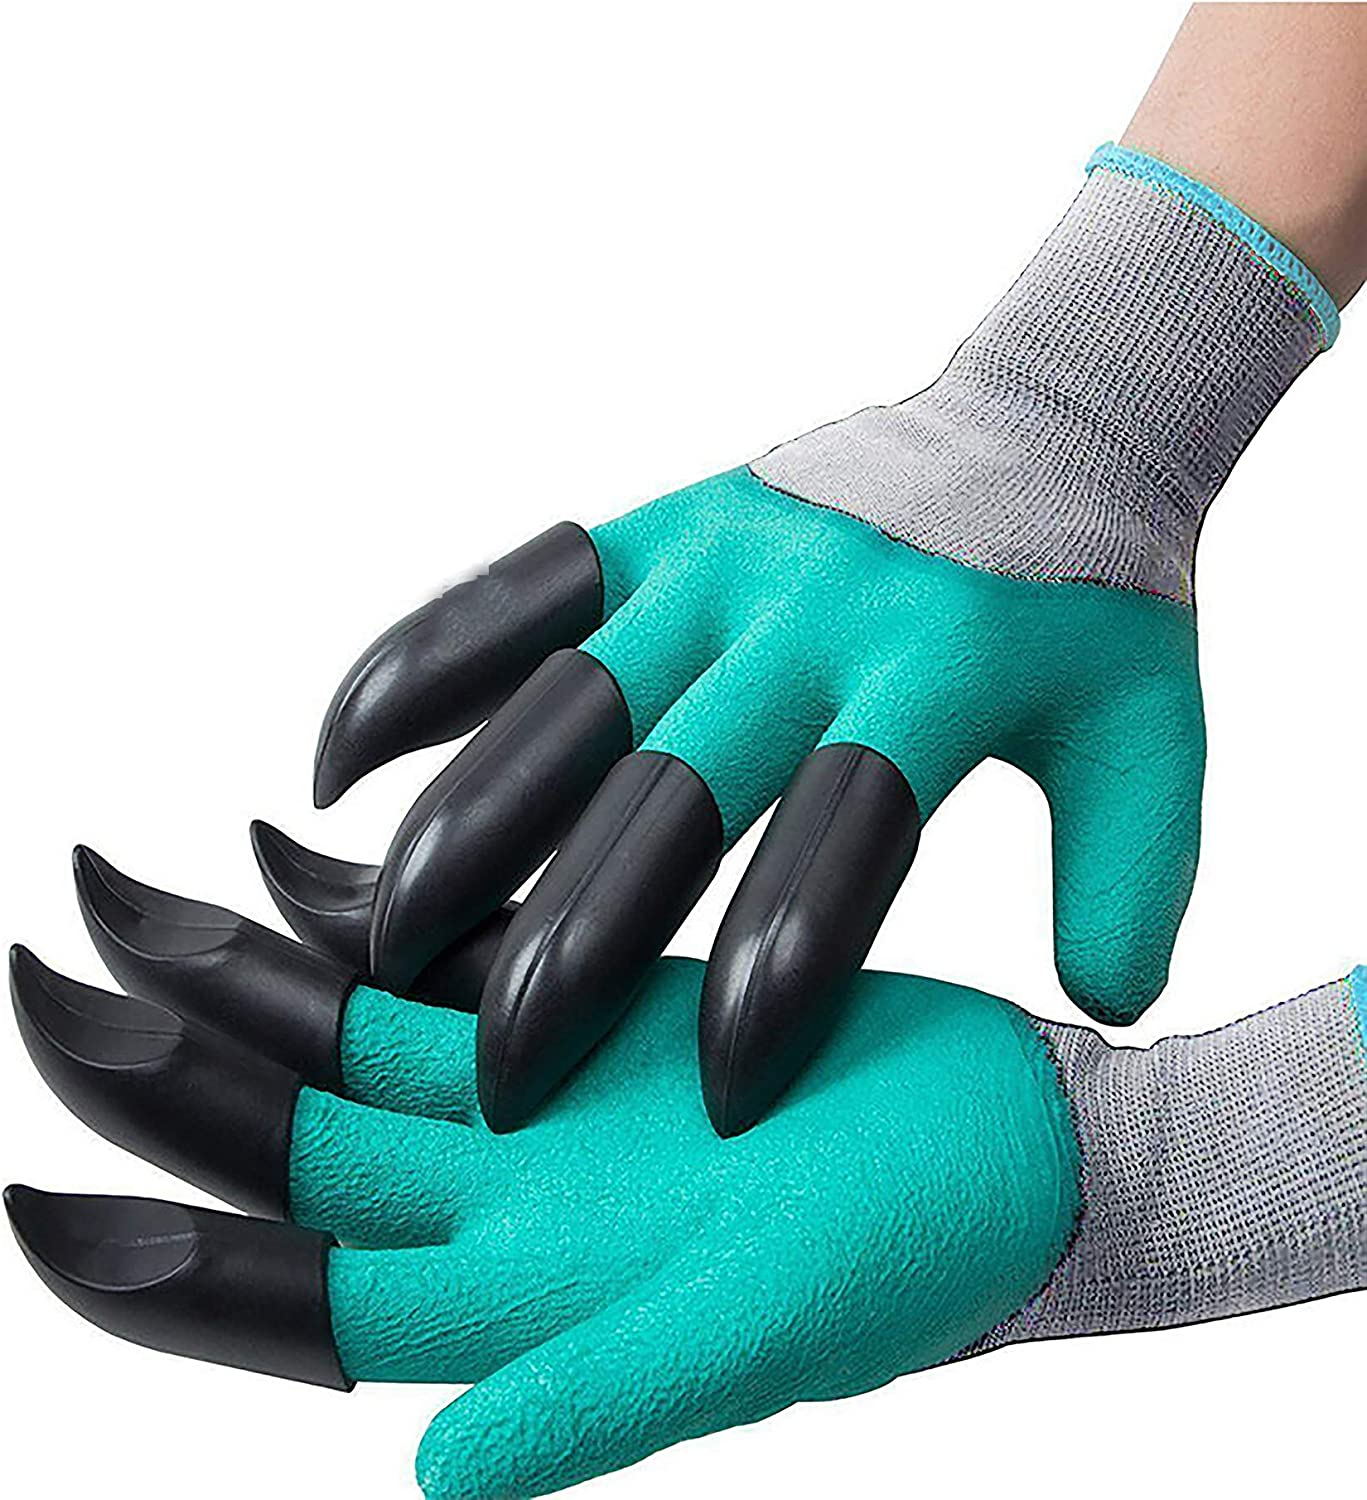 Green Garden Gloves with Genie Claws Waterproof Gloves 1 Pair